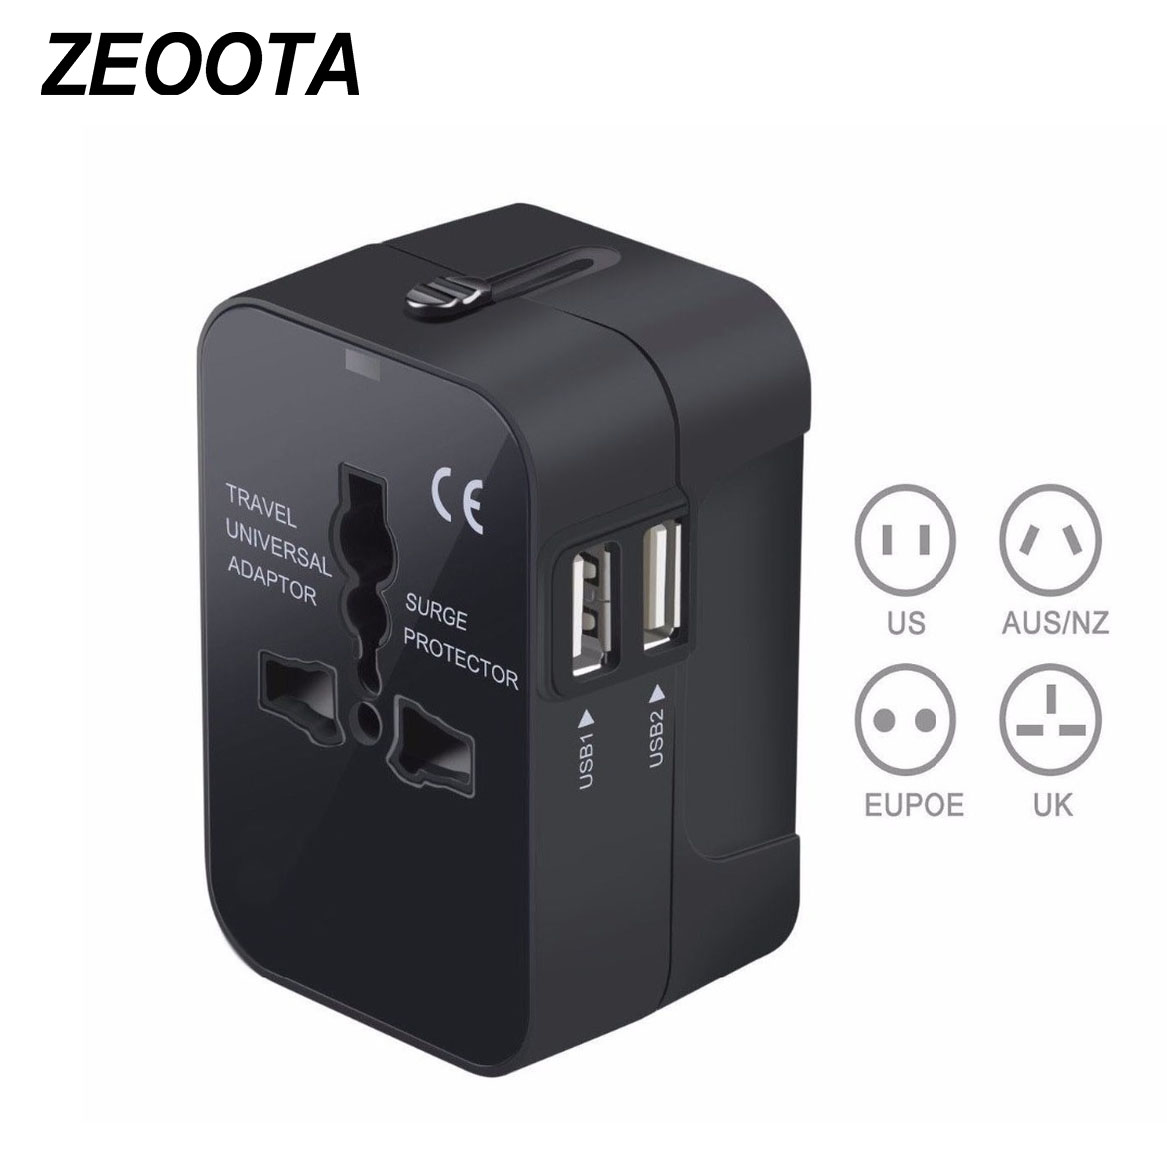 Universal Worldwide All in One Phone Charger Travel Wall AC Power Plug Adapter with Dual USB Charging Ports for USA EU UK AU корм whiskas пауч желе индейка 85g для котят 10156212 10130782